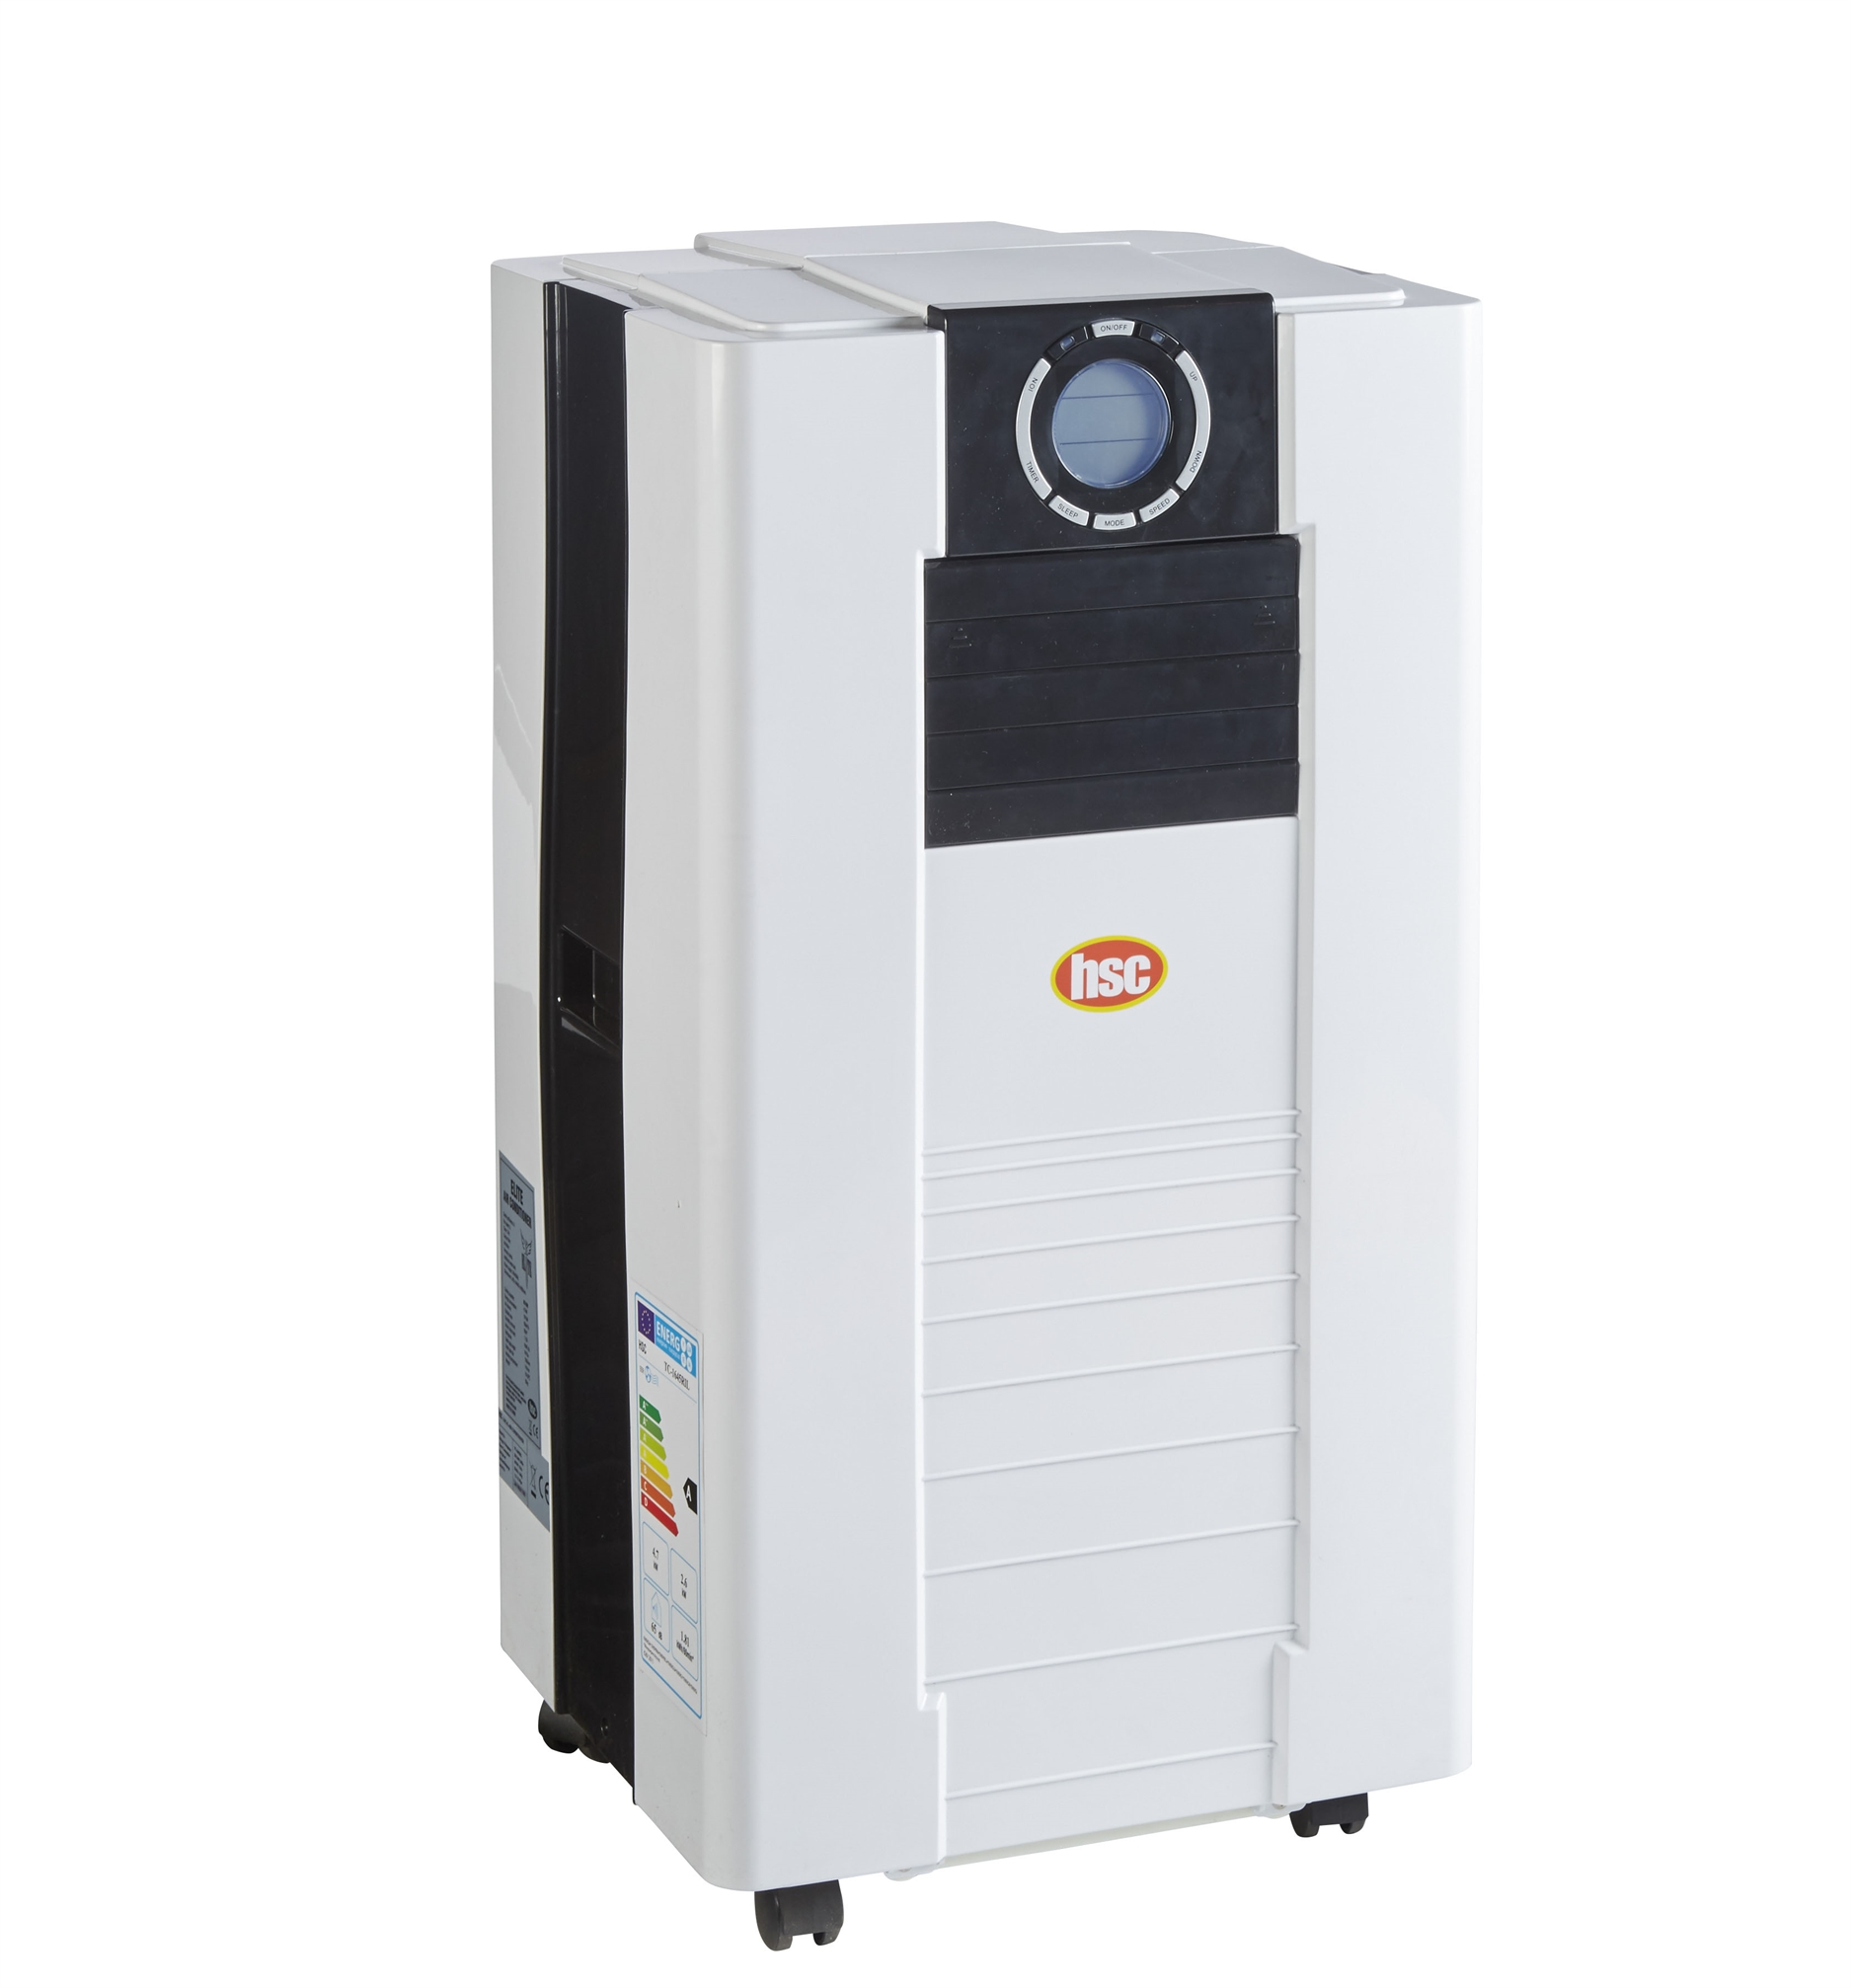 Small-air-conditioner-20-0031.jpg